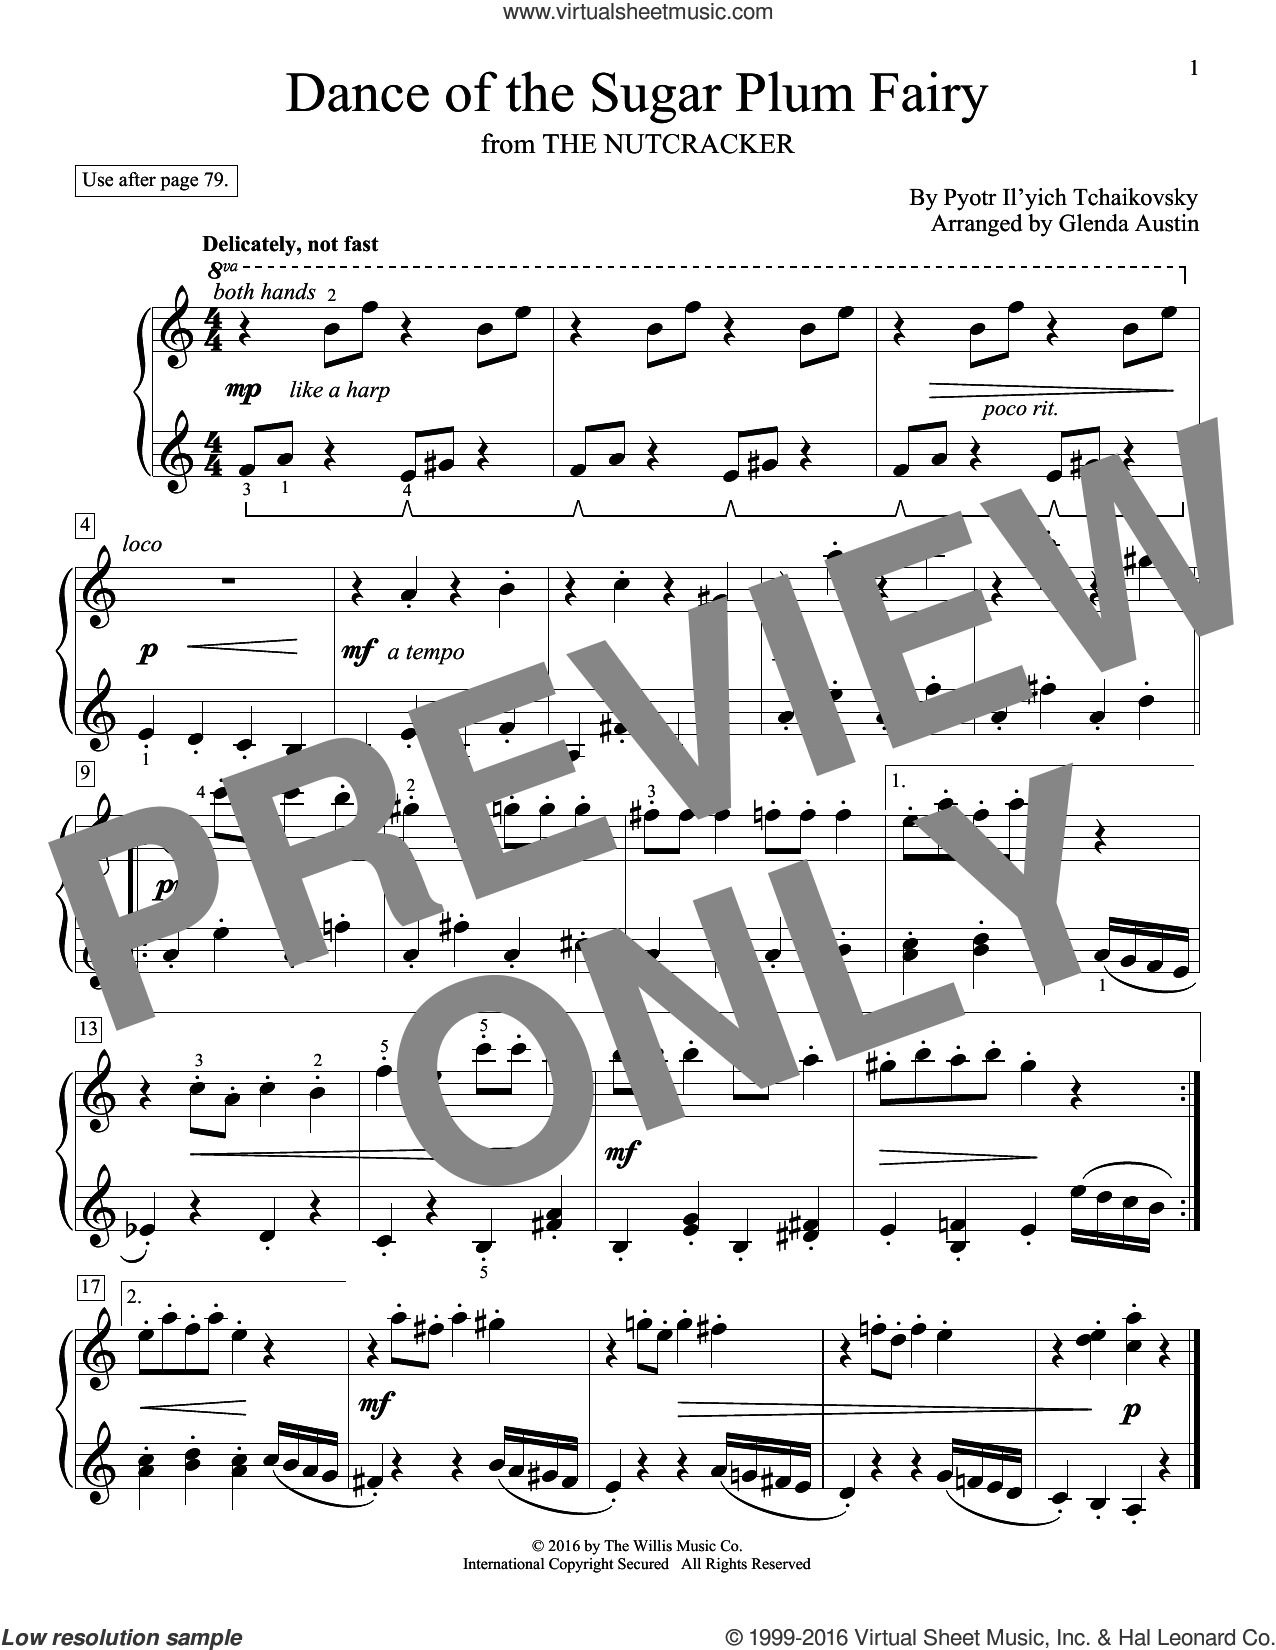 Dance Of The Sugar Plum Fairy sheet music for piano solo (elementary) by Glenda Austin